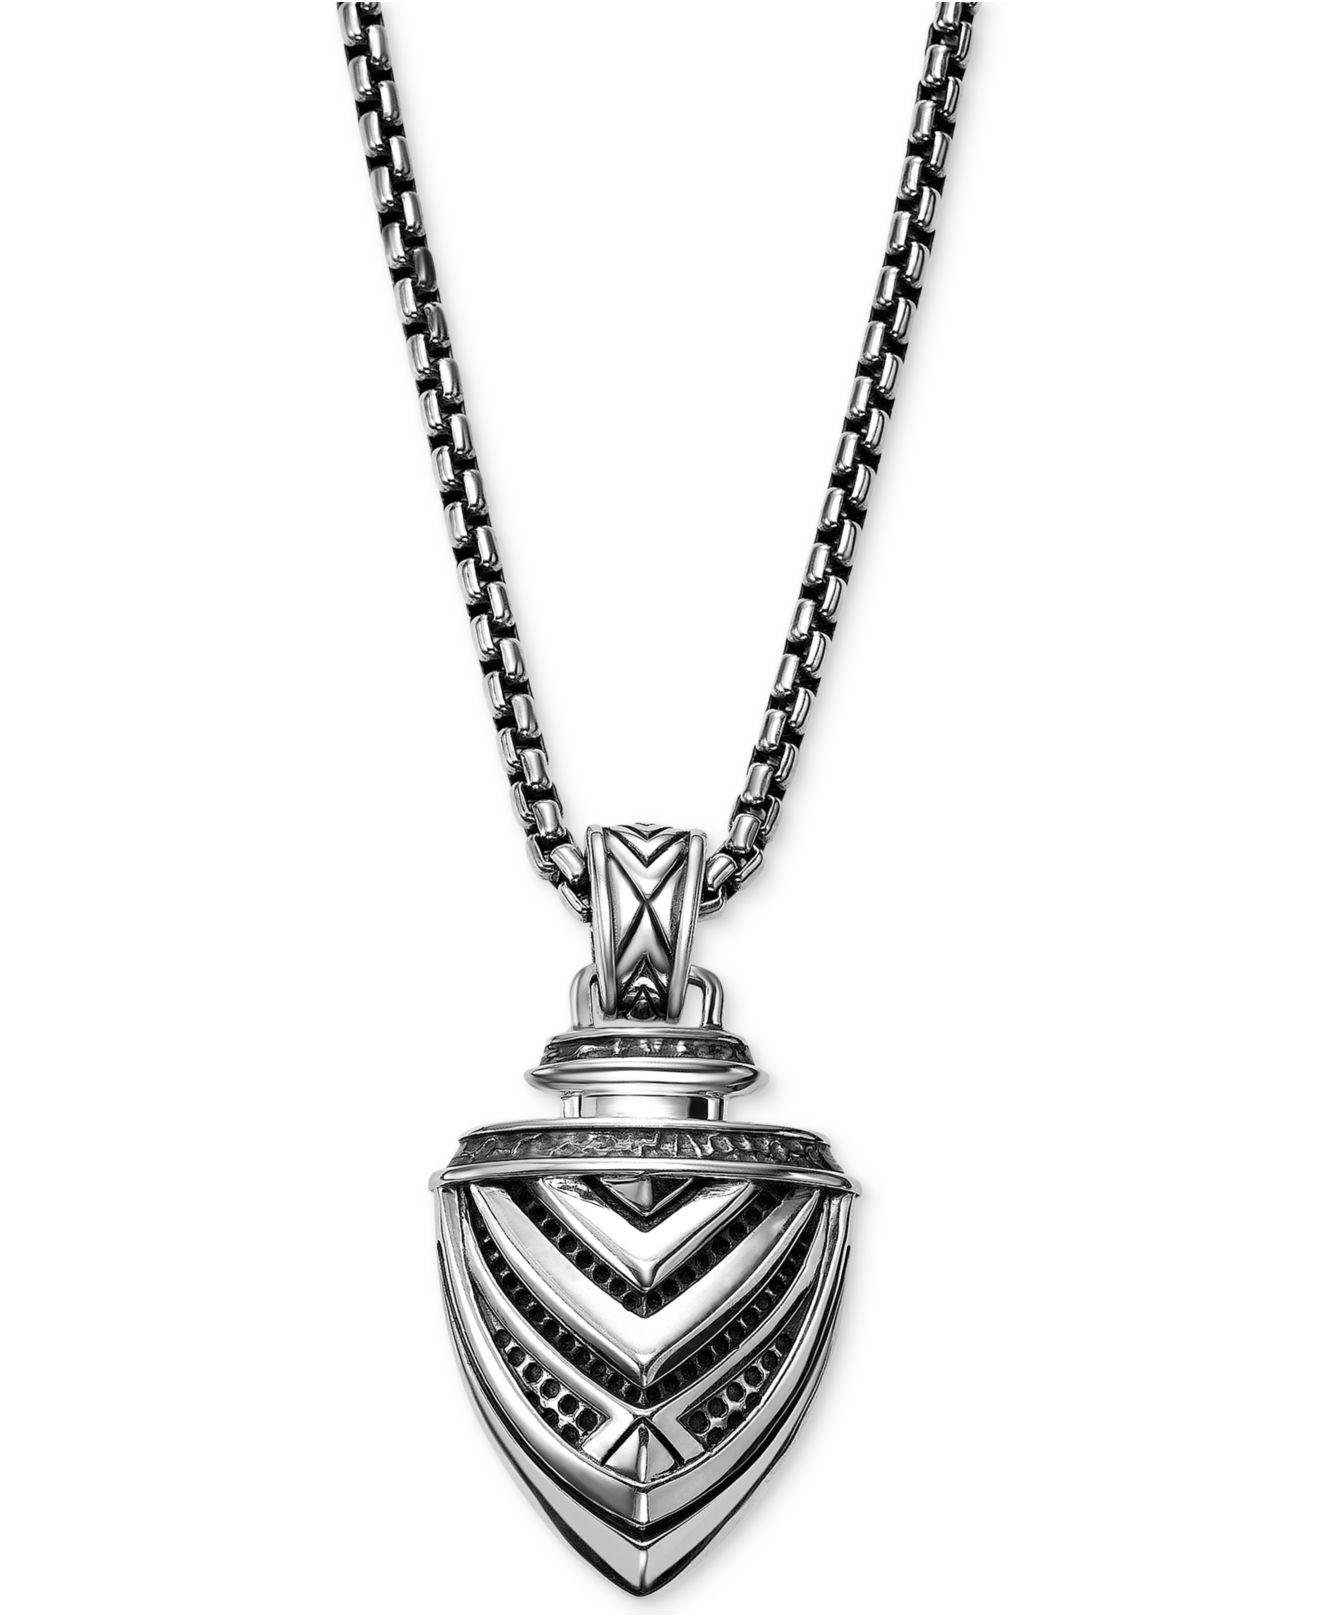 6c244a17afcdf3 Scott Kay Men's Arrow Pendant Necklace In Sterling Silver in ...